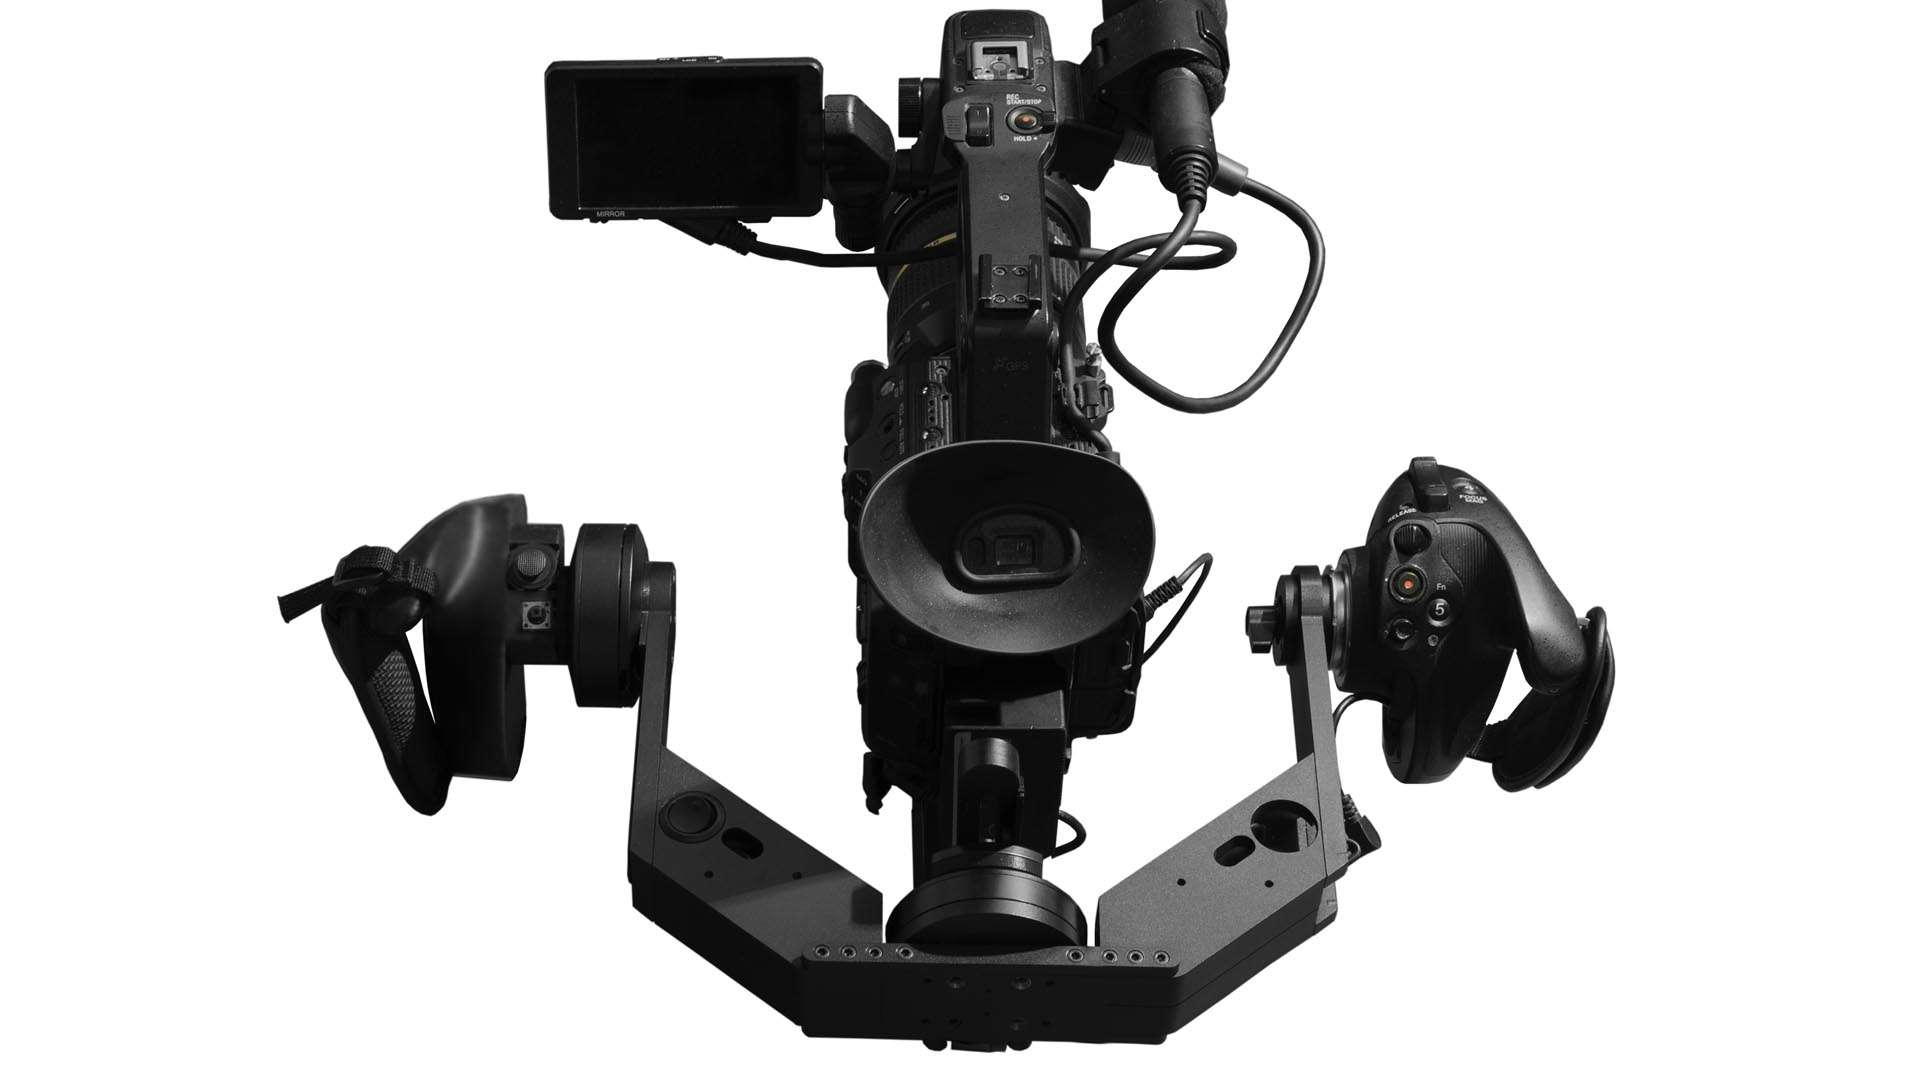 icecam gimbal tiny super 35 3